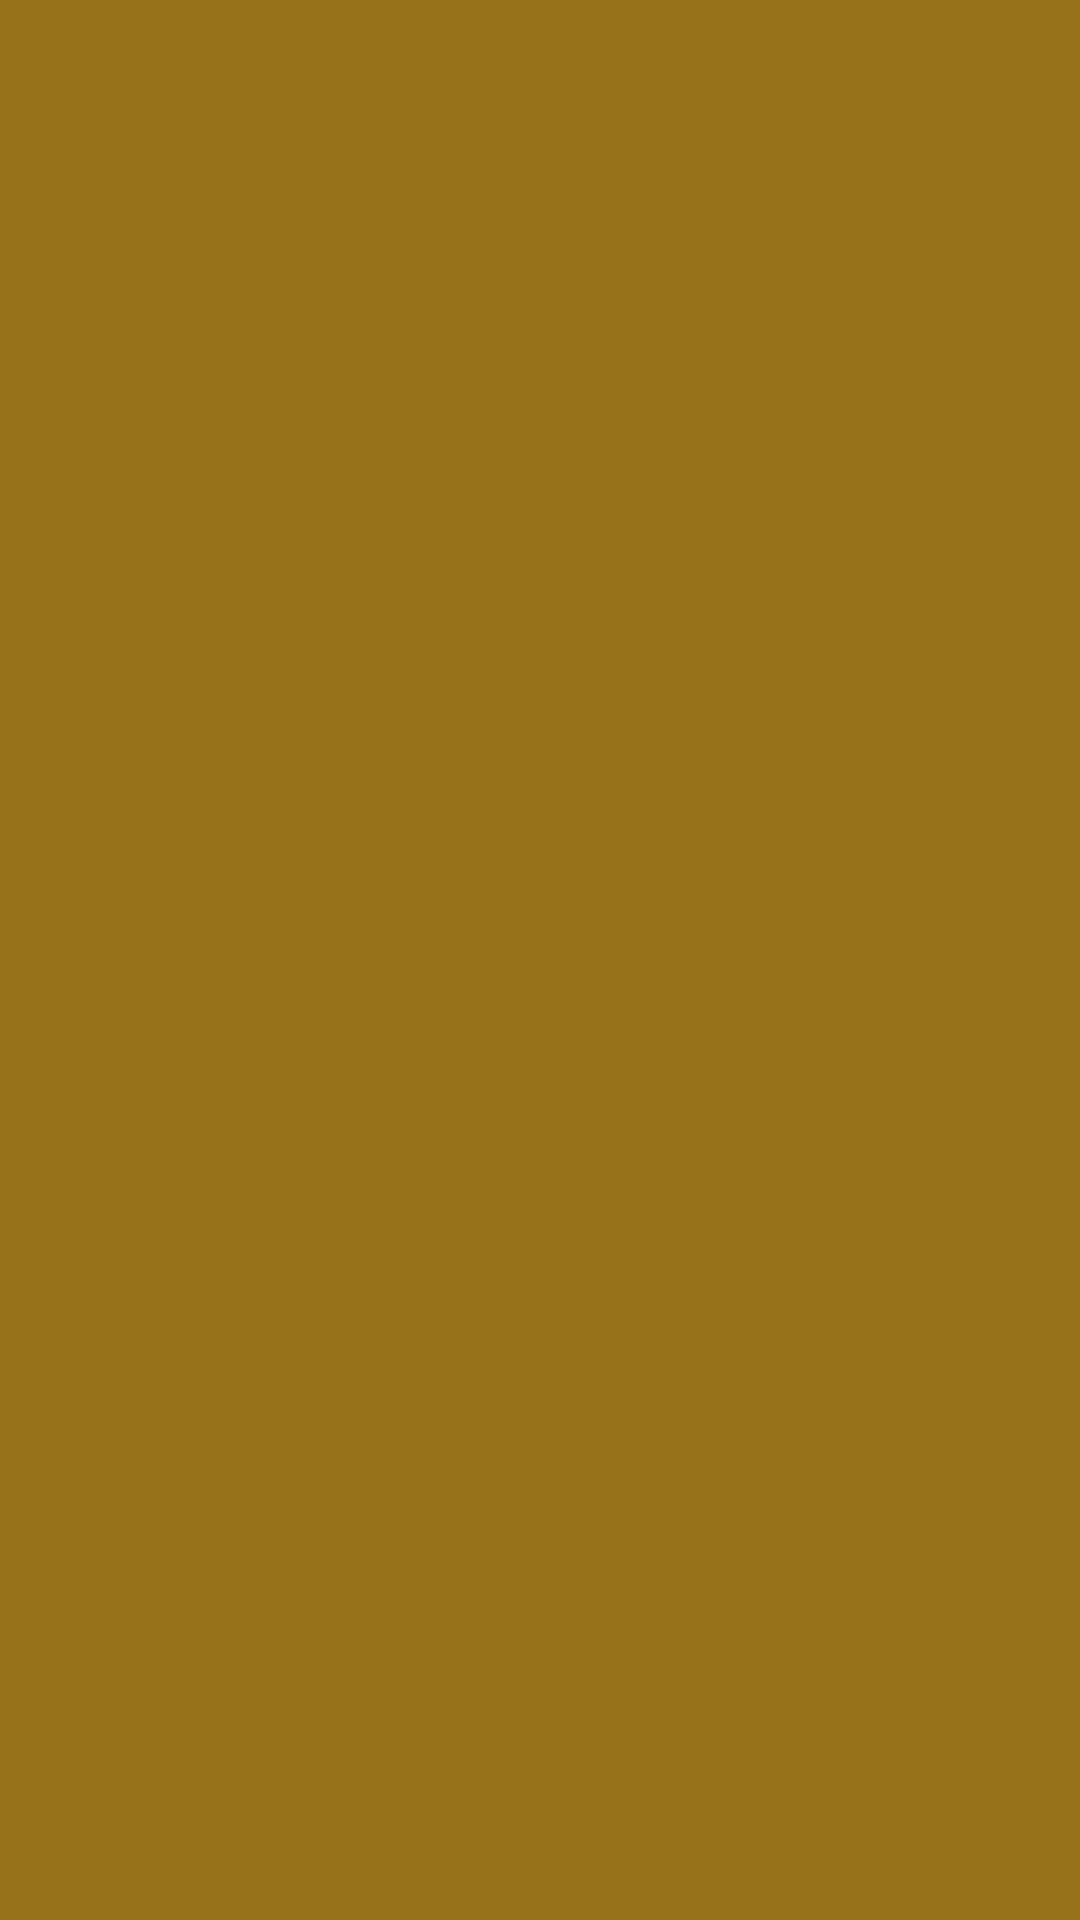 1080x1920 Sand Dune Solid Color Background